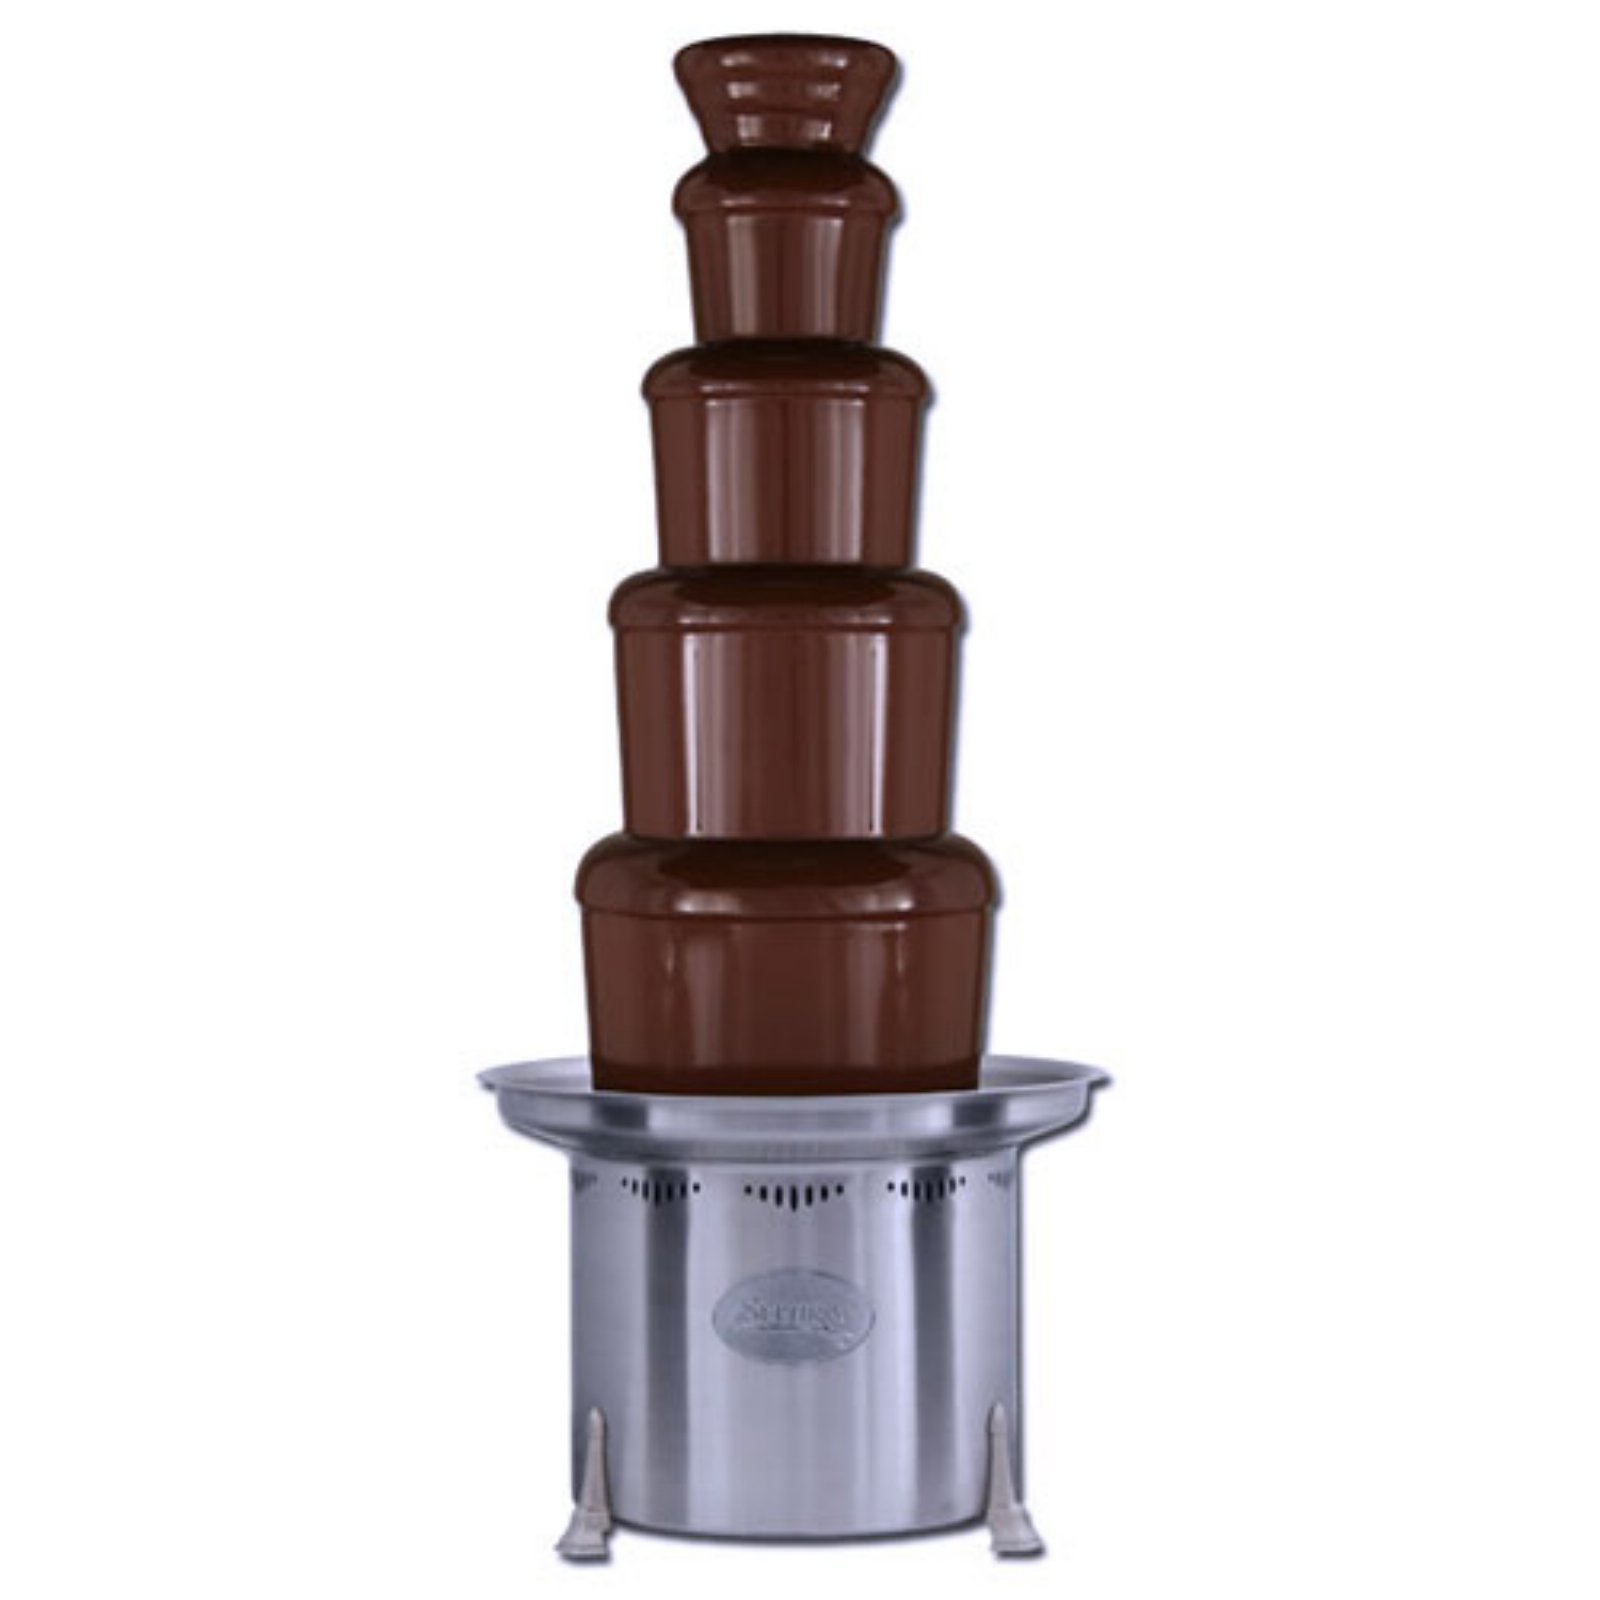 Sephra 44 Inch Stainless Steel Commercial Chocolate Fountain by Sephra LLC